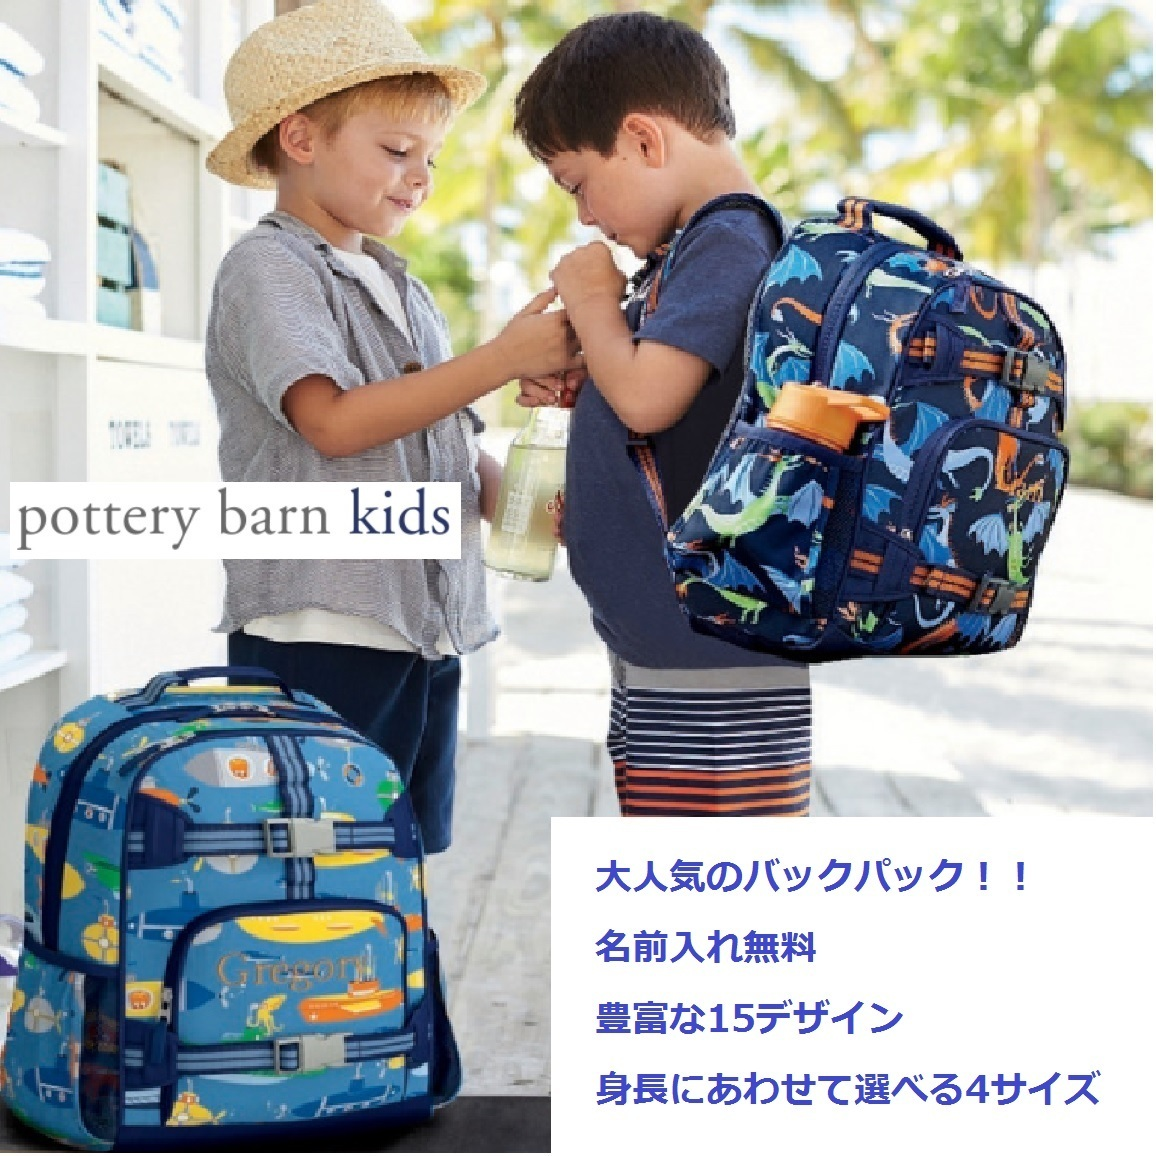 Pottery Barn Kids Names Put A Free Backpack Pre-k Height